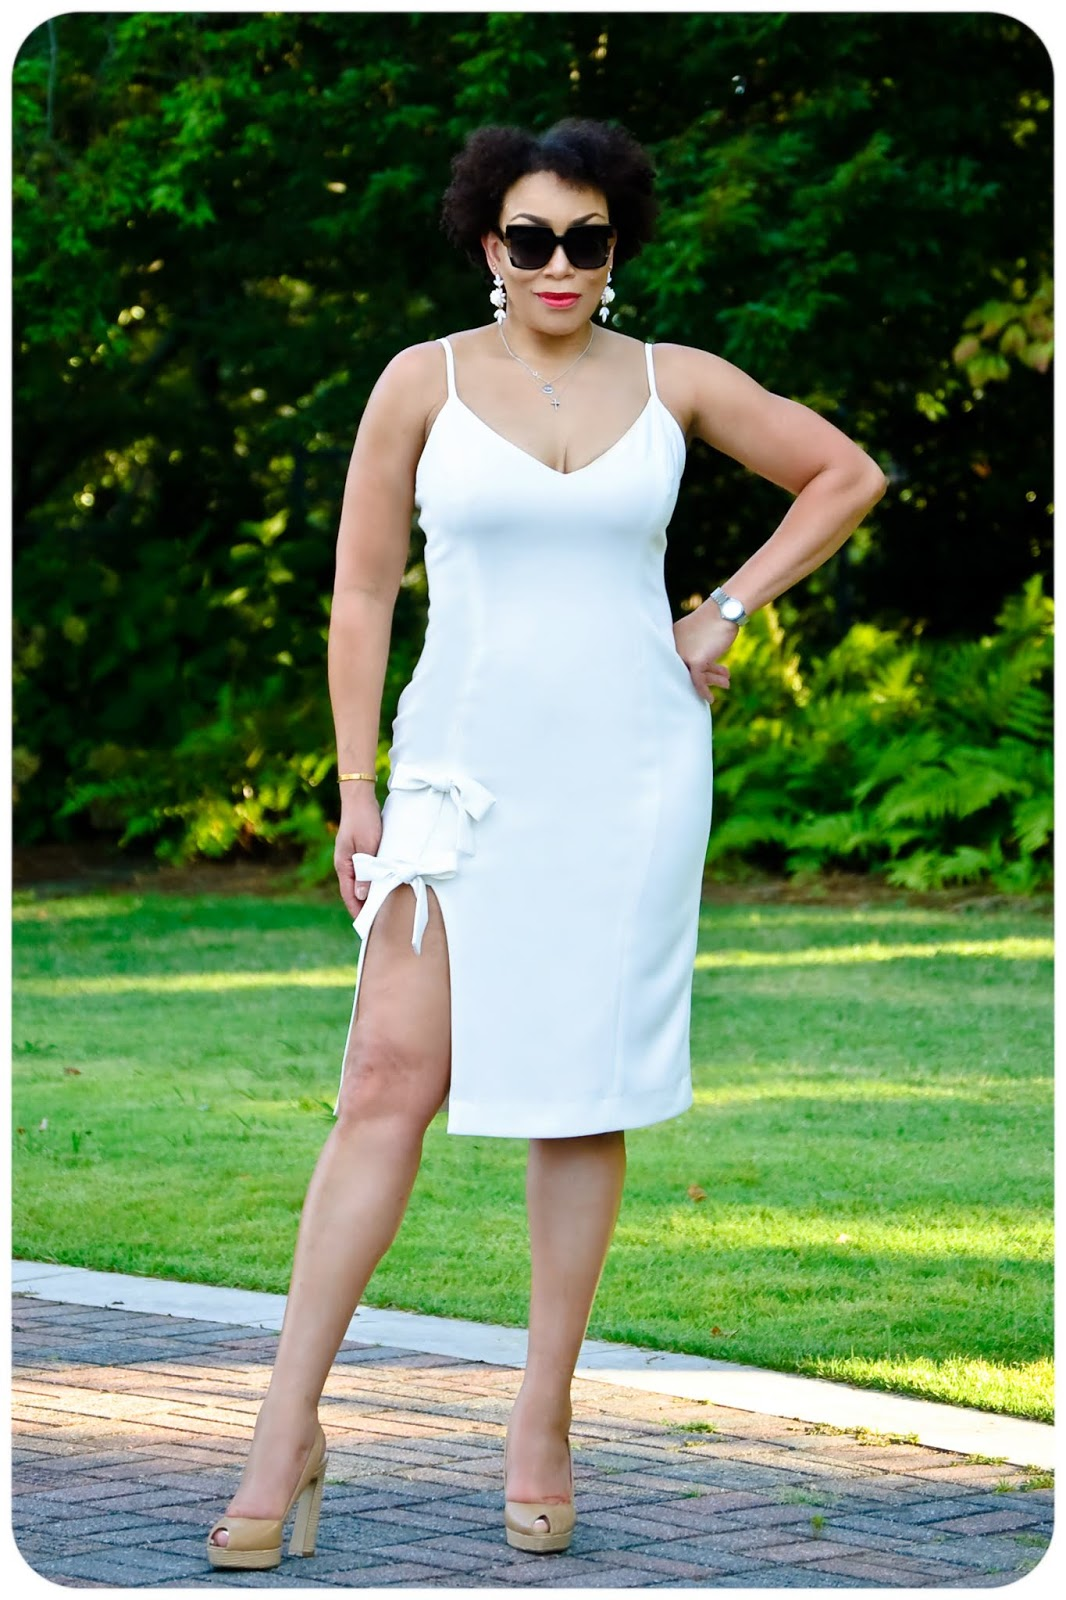 DIY White Bow Dress - Erica Bunker DIY Style!